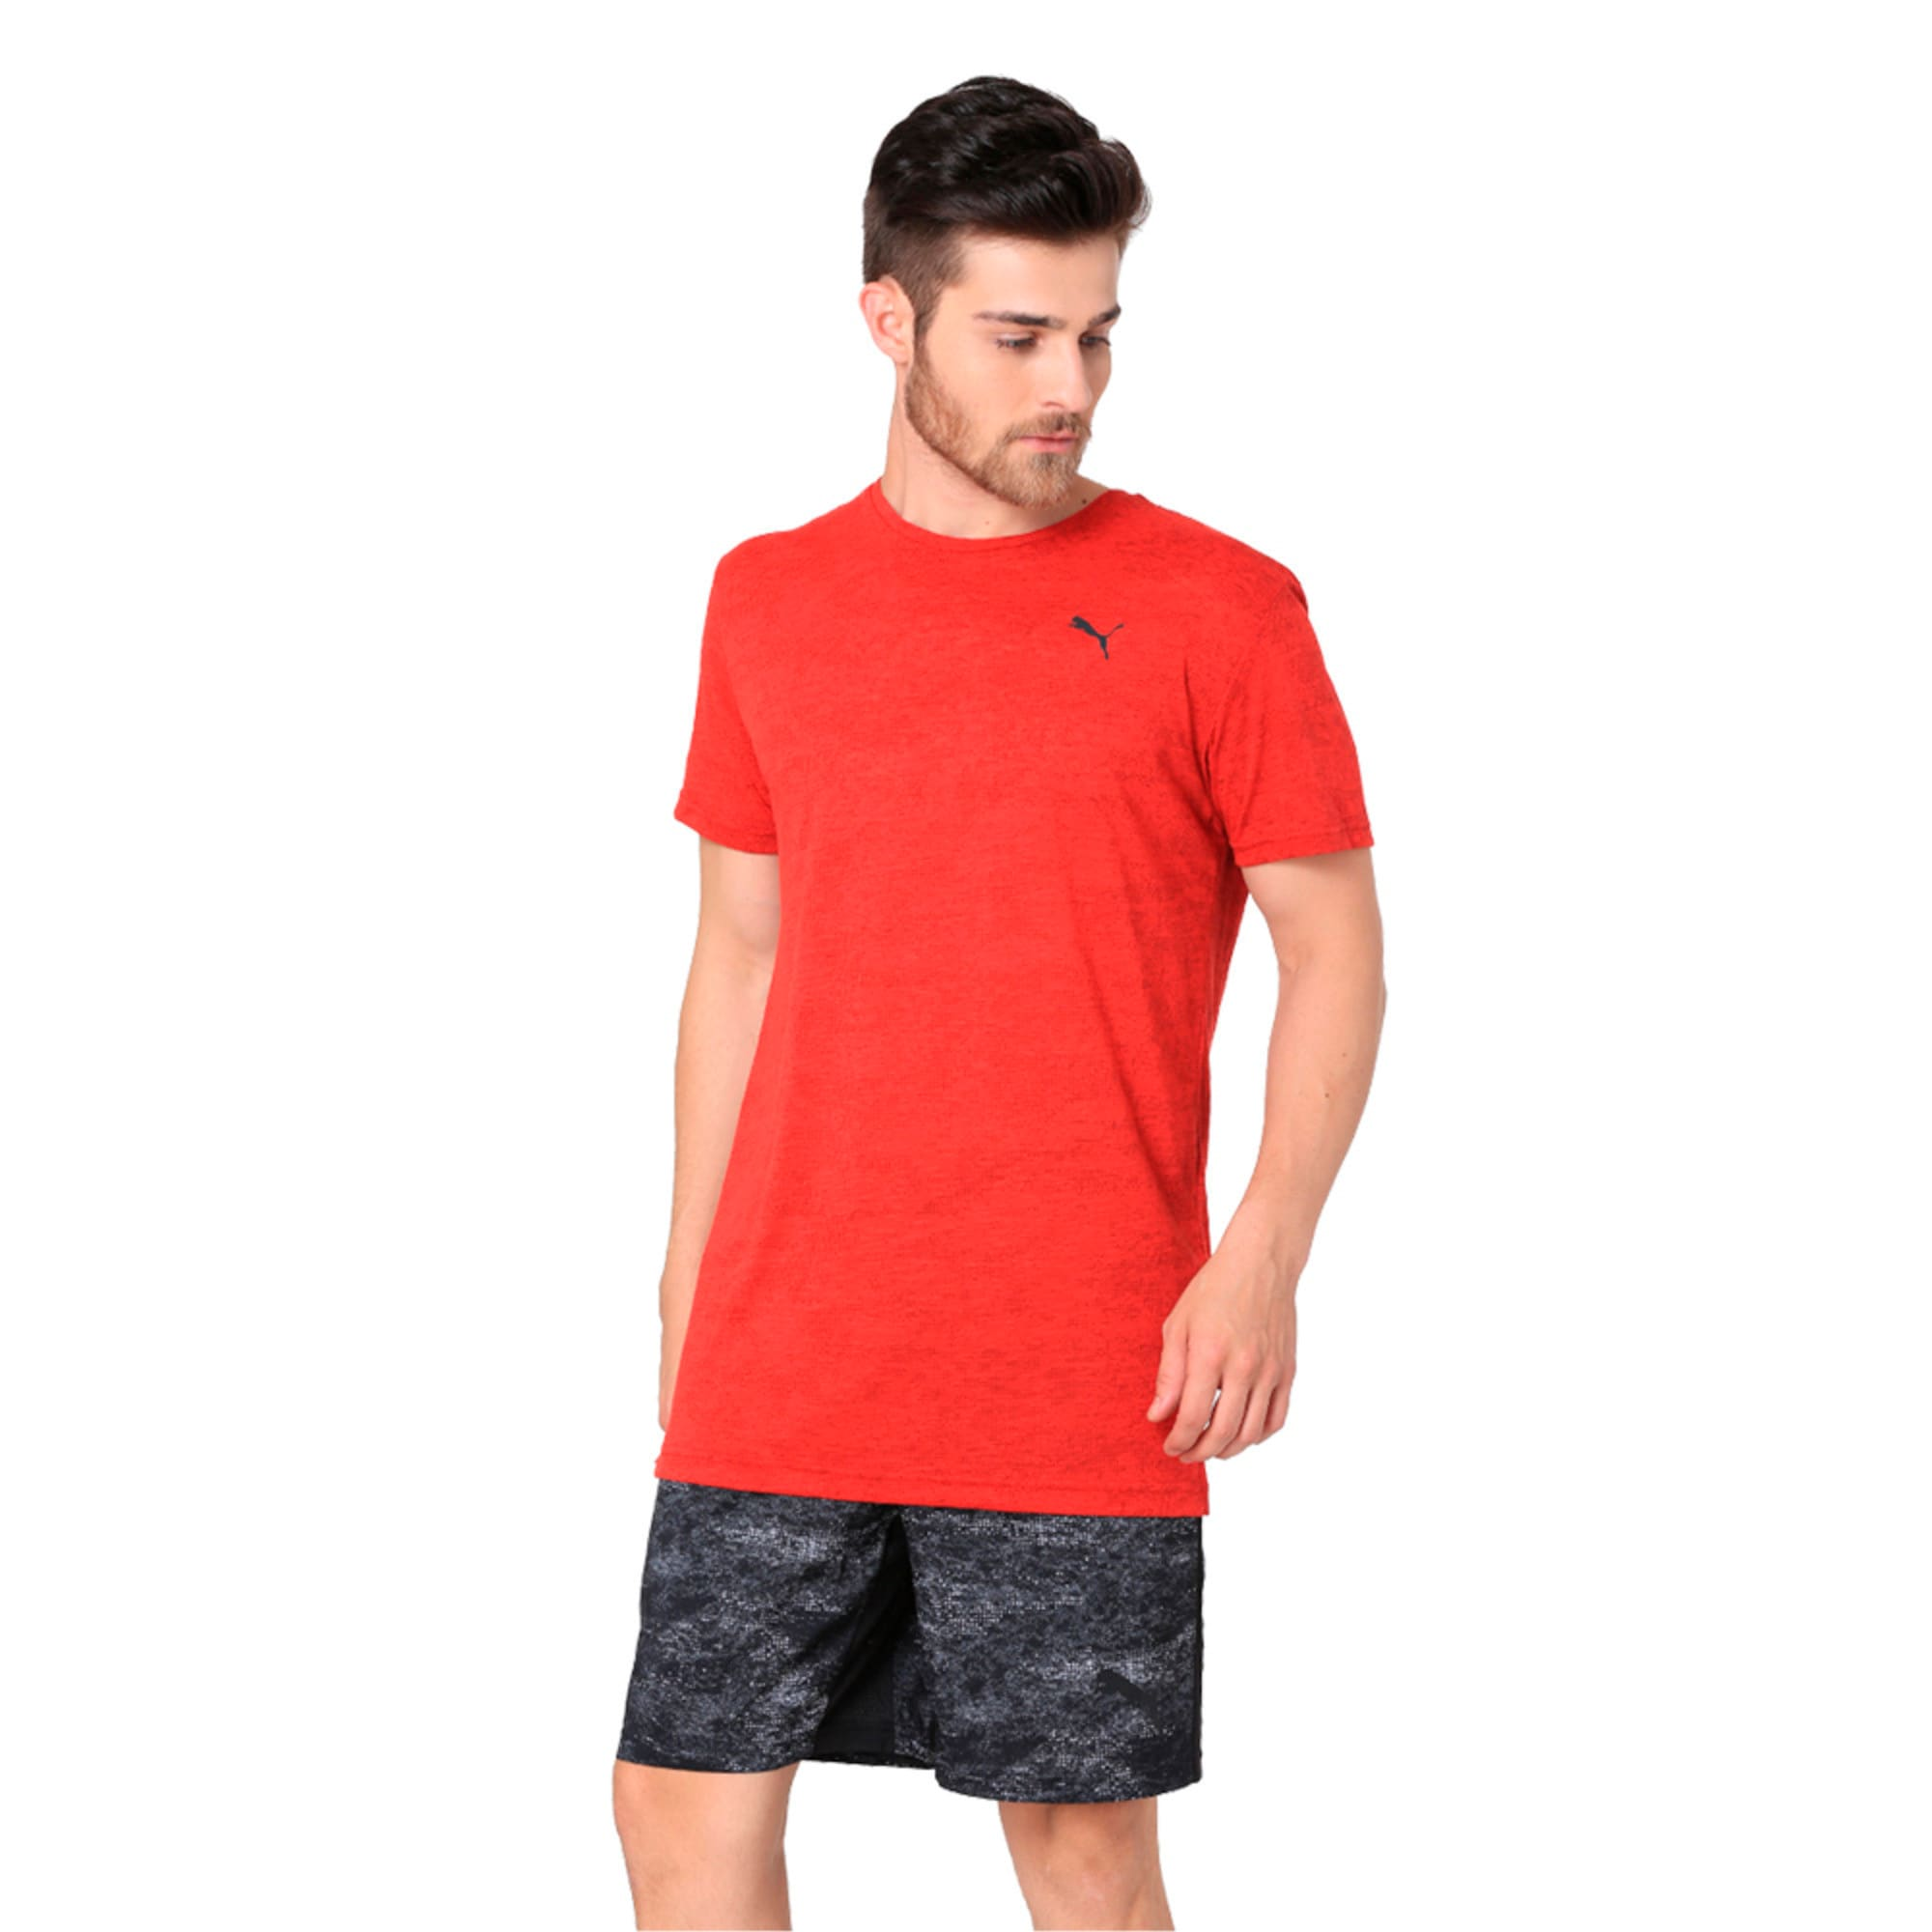 Thumbnail 1 of drirelease Graphic Men's Short Sleeve Training Tee, Flame Scarlet, medium-IND